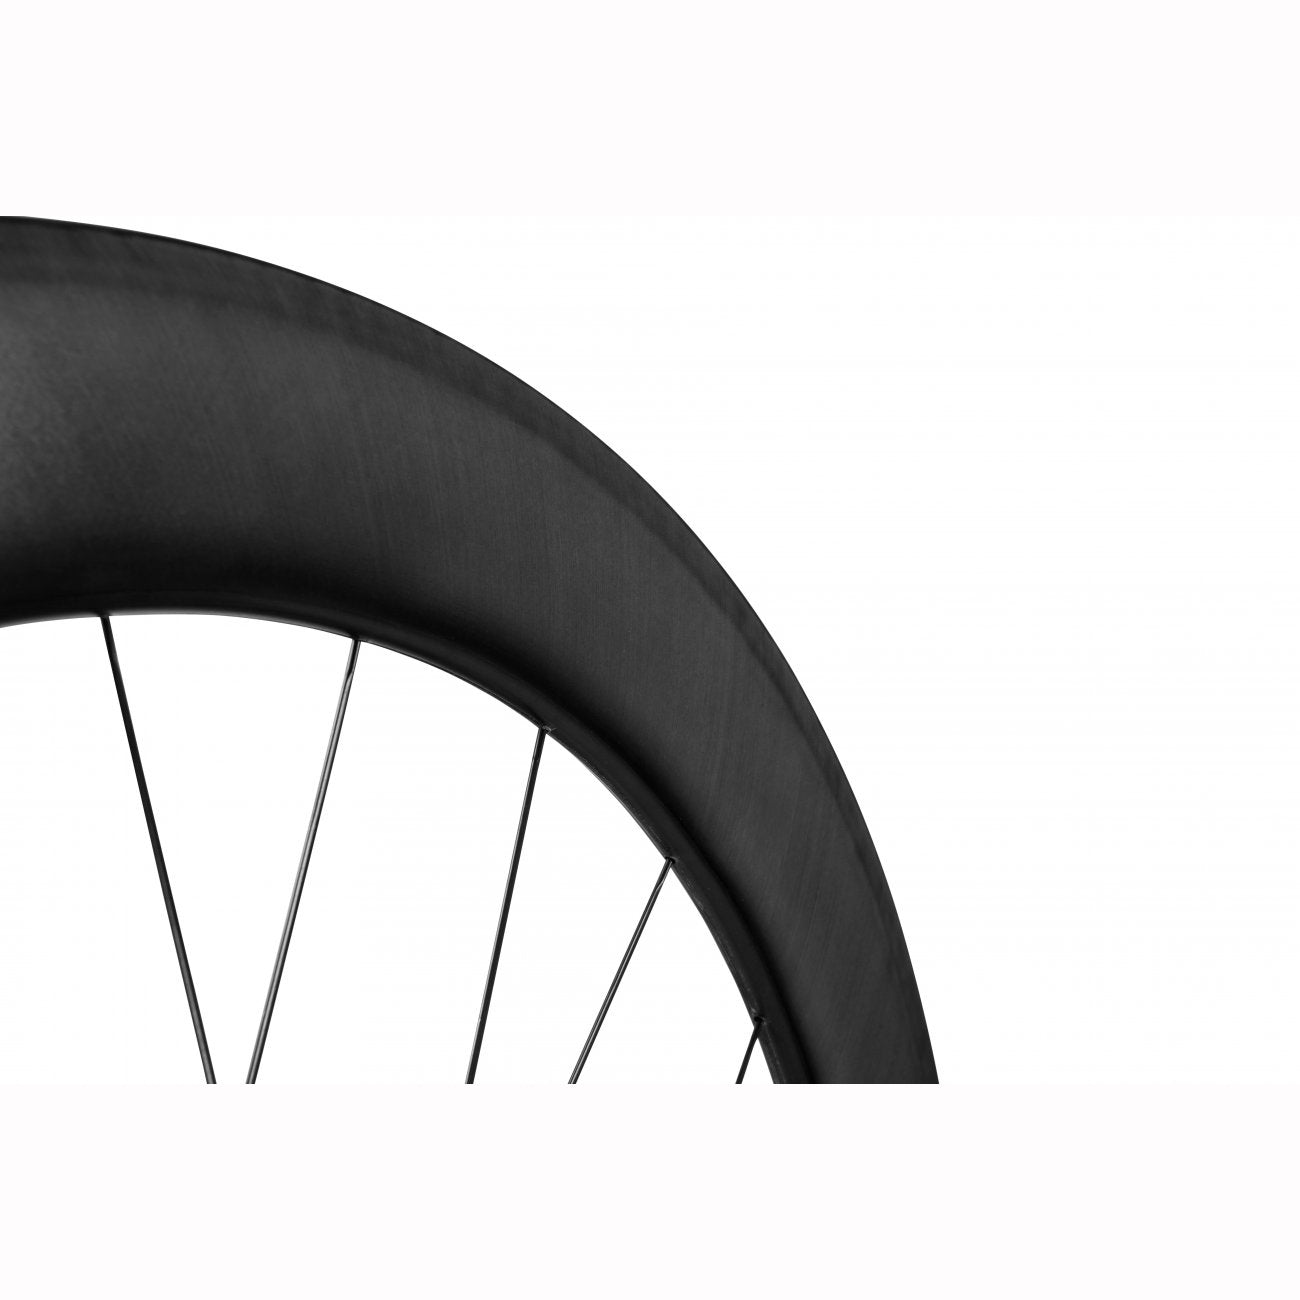 ENVE Foundation 45 Disc Wheelset